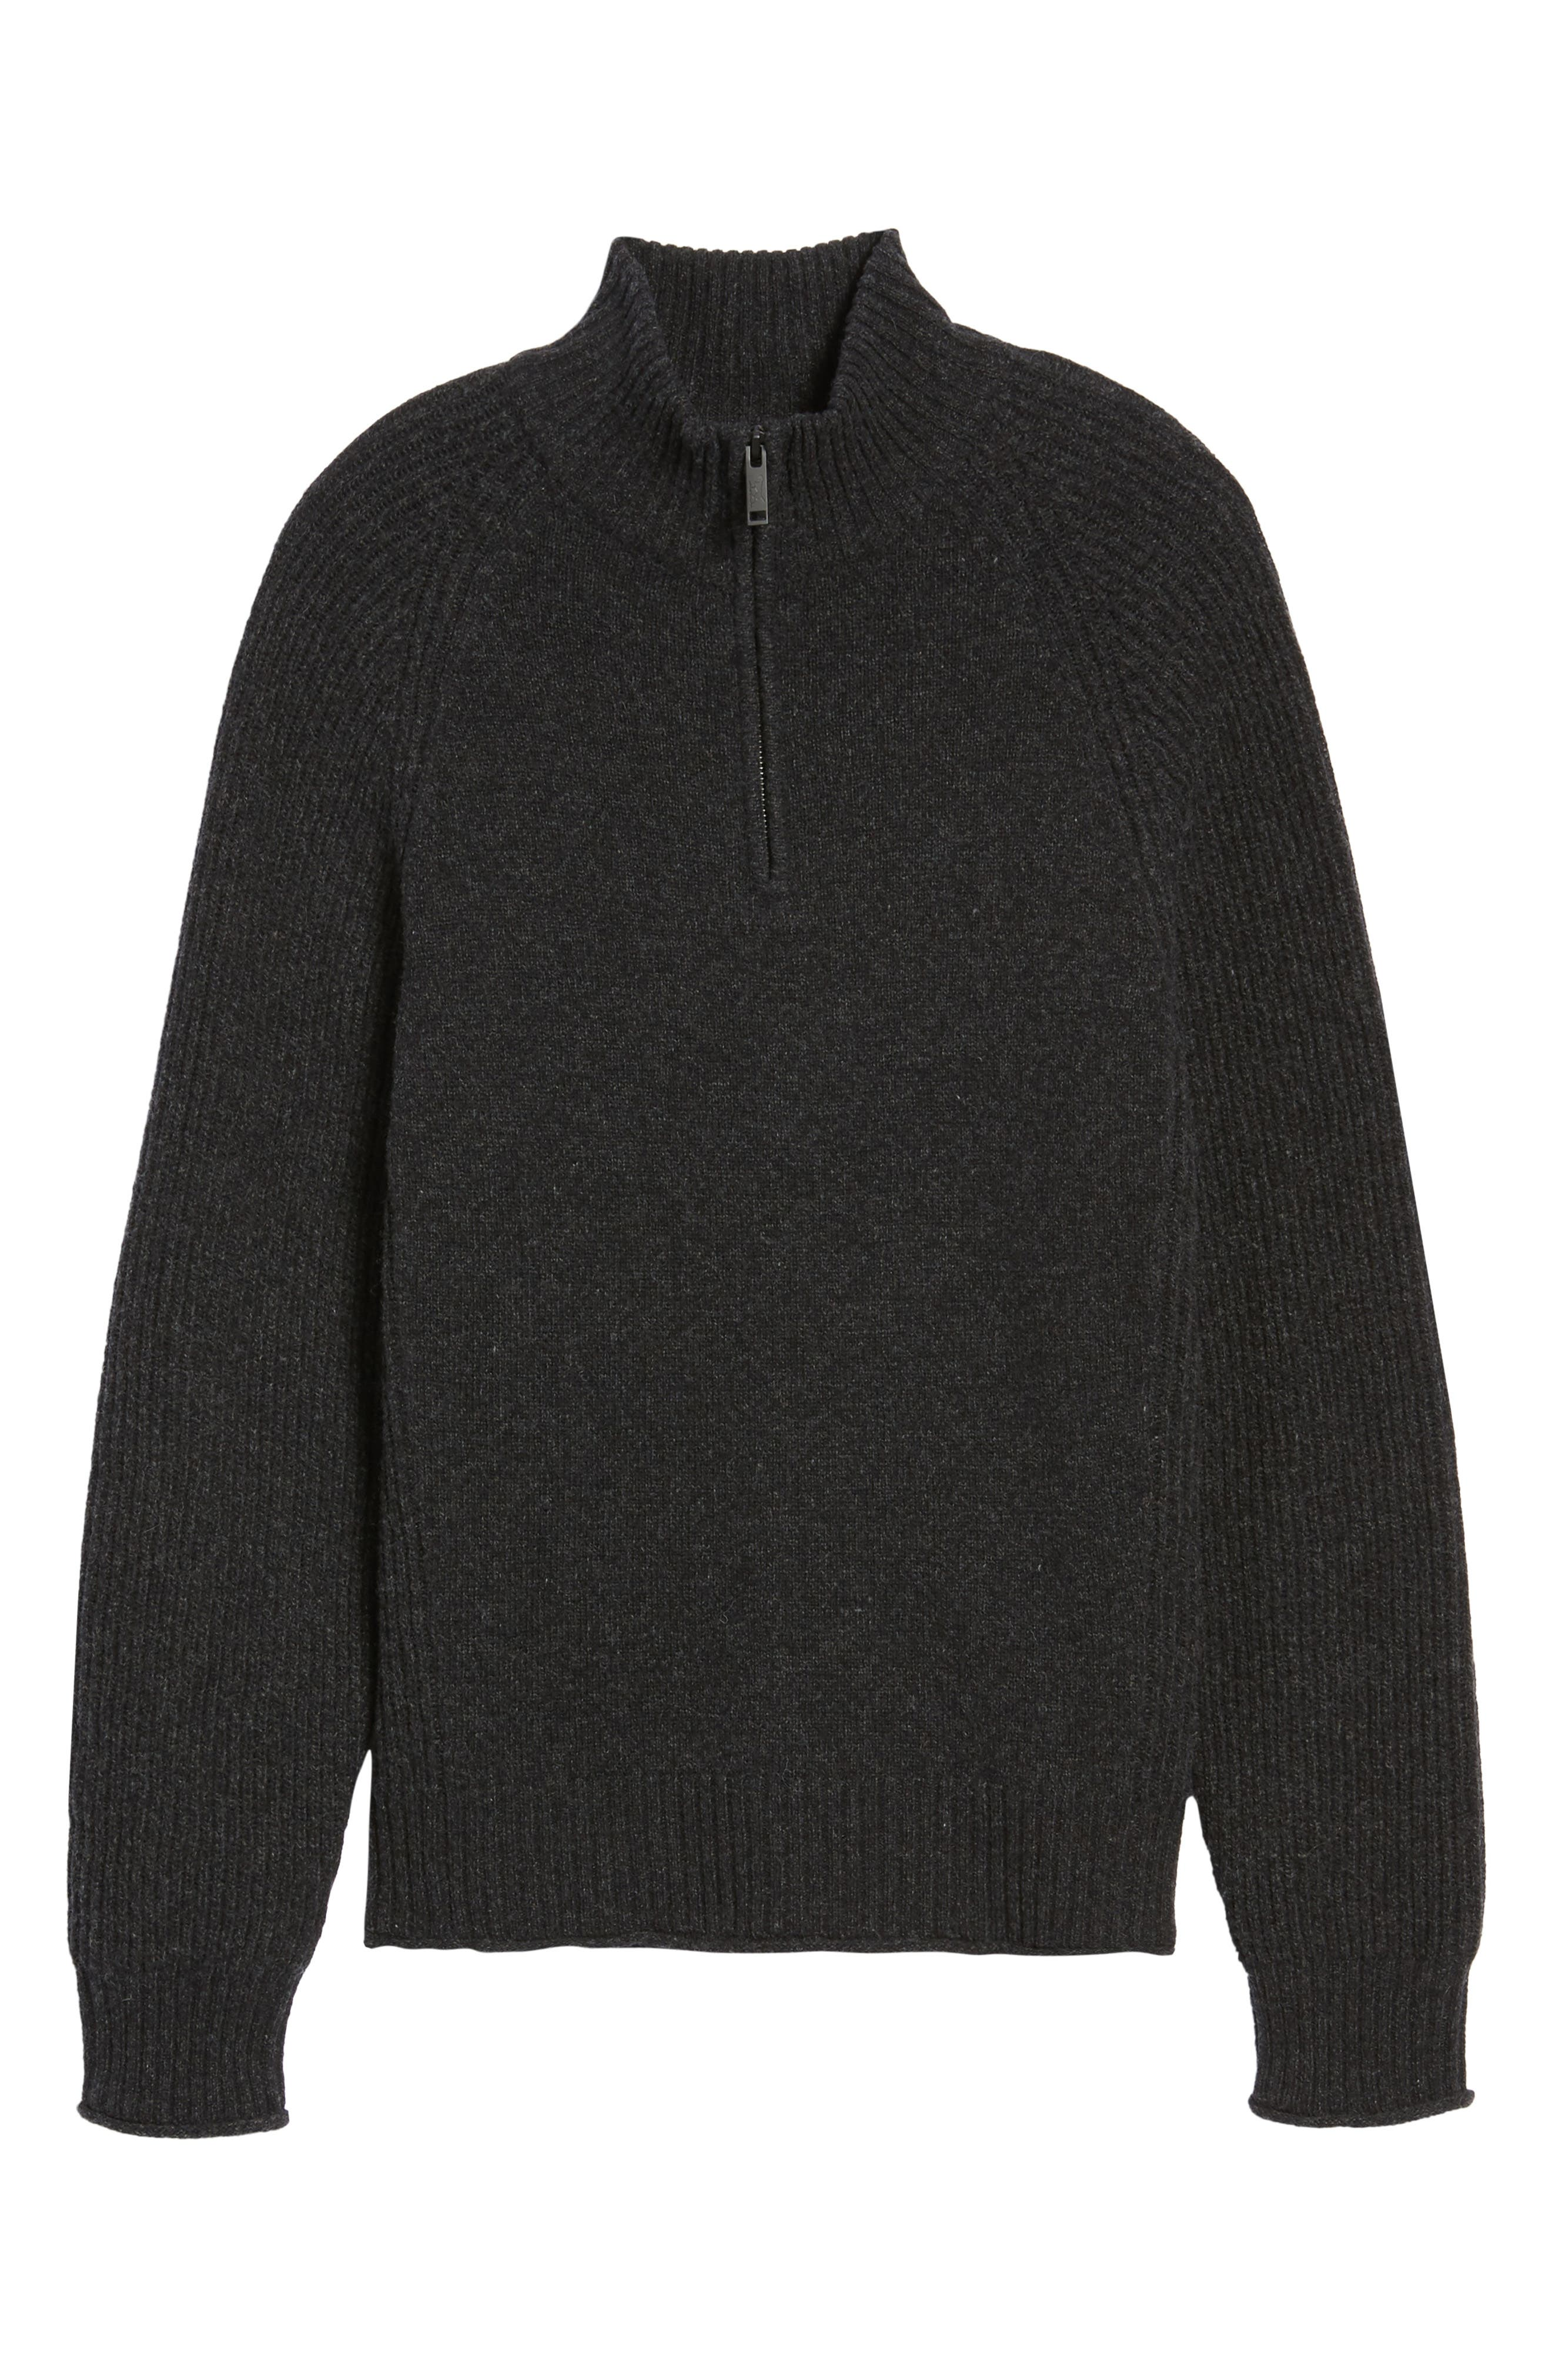 Stredwick Lambswool Sweater,                             Alternate thumbnail 26, color,